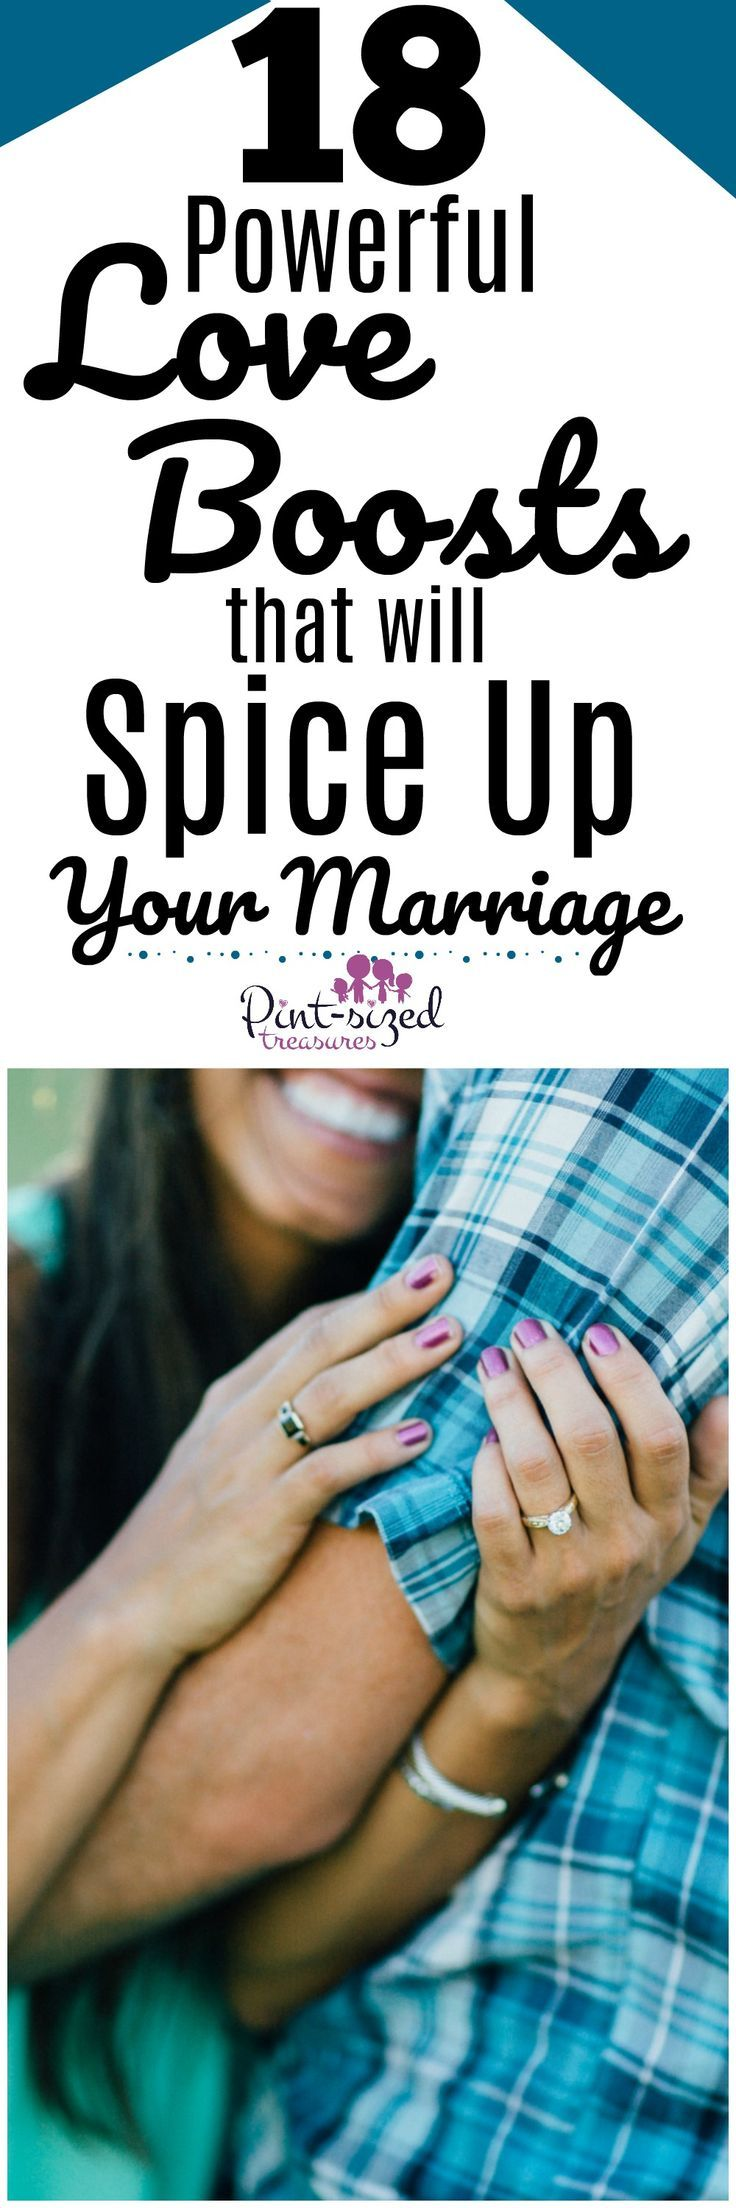 Ready for a spicy marriage? These 18 love boosts are just what your marriage needs, craves and LOVES! Go ahead and add some LOVE and spice to your marriage relationship today! #marriagehelp #marriagetips #marriage #romance #datenight #spiceupmarriage